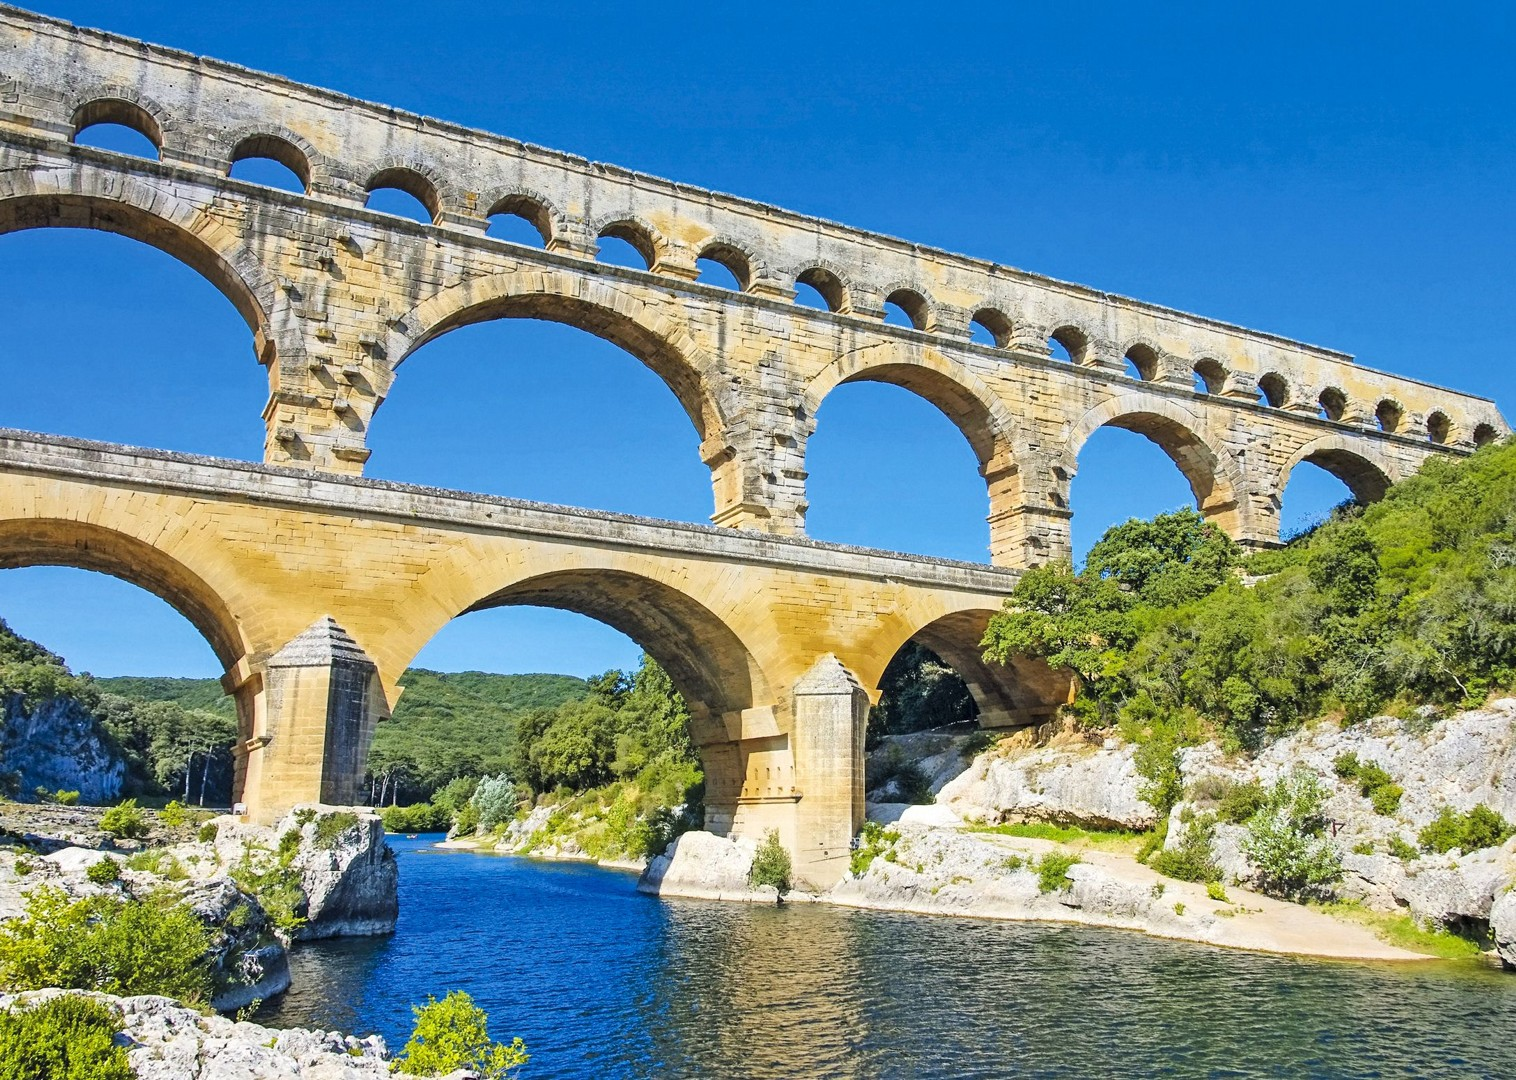 pont-du-gard-gardon-river-cycling-boat-cruise-holiday.jpg - France - Provence - Aigues-Mortes to Avignon - Bike and Barge Holiday - Leisure Cycling